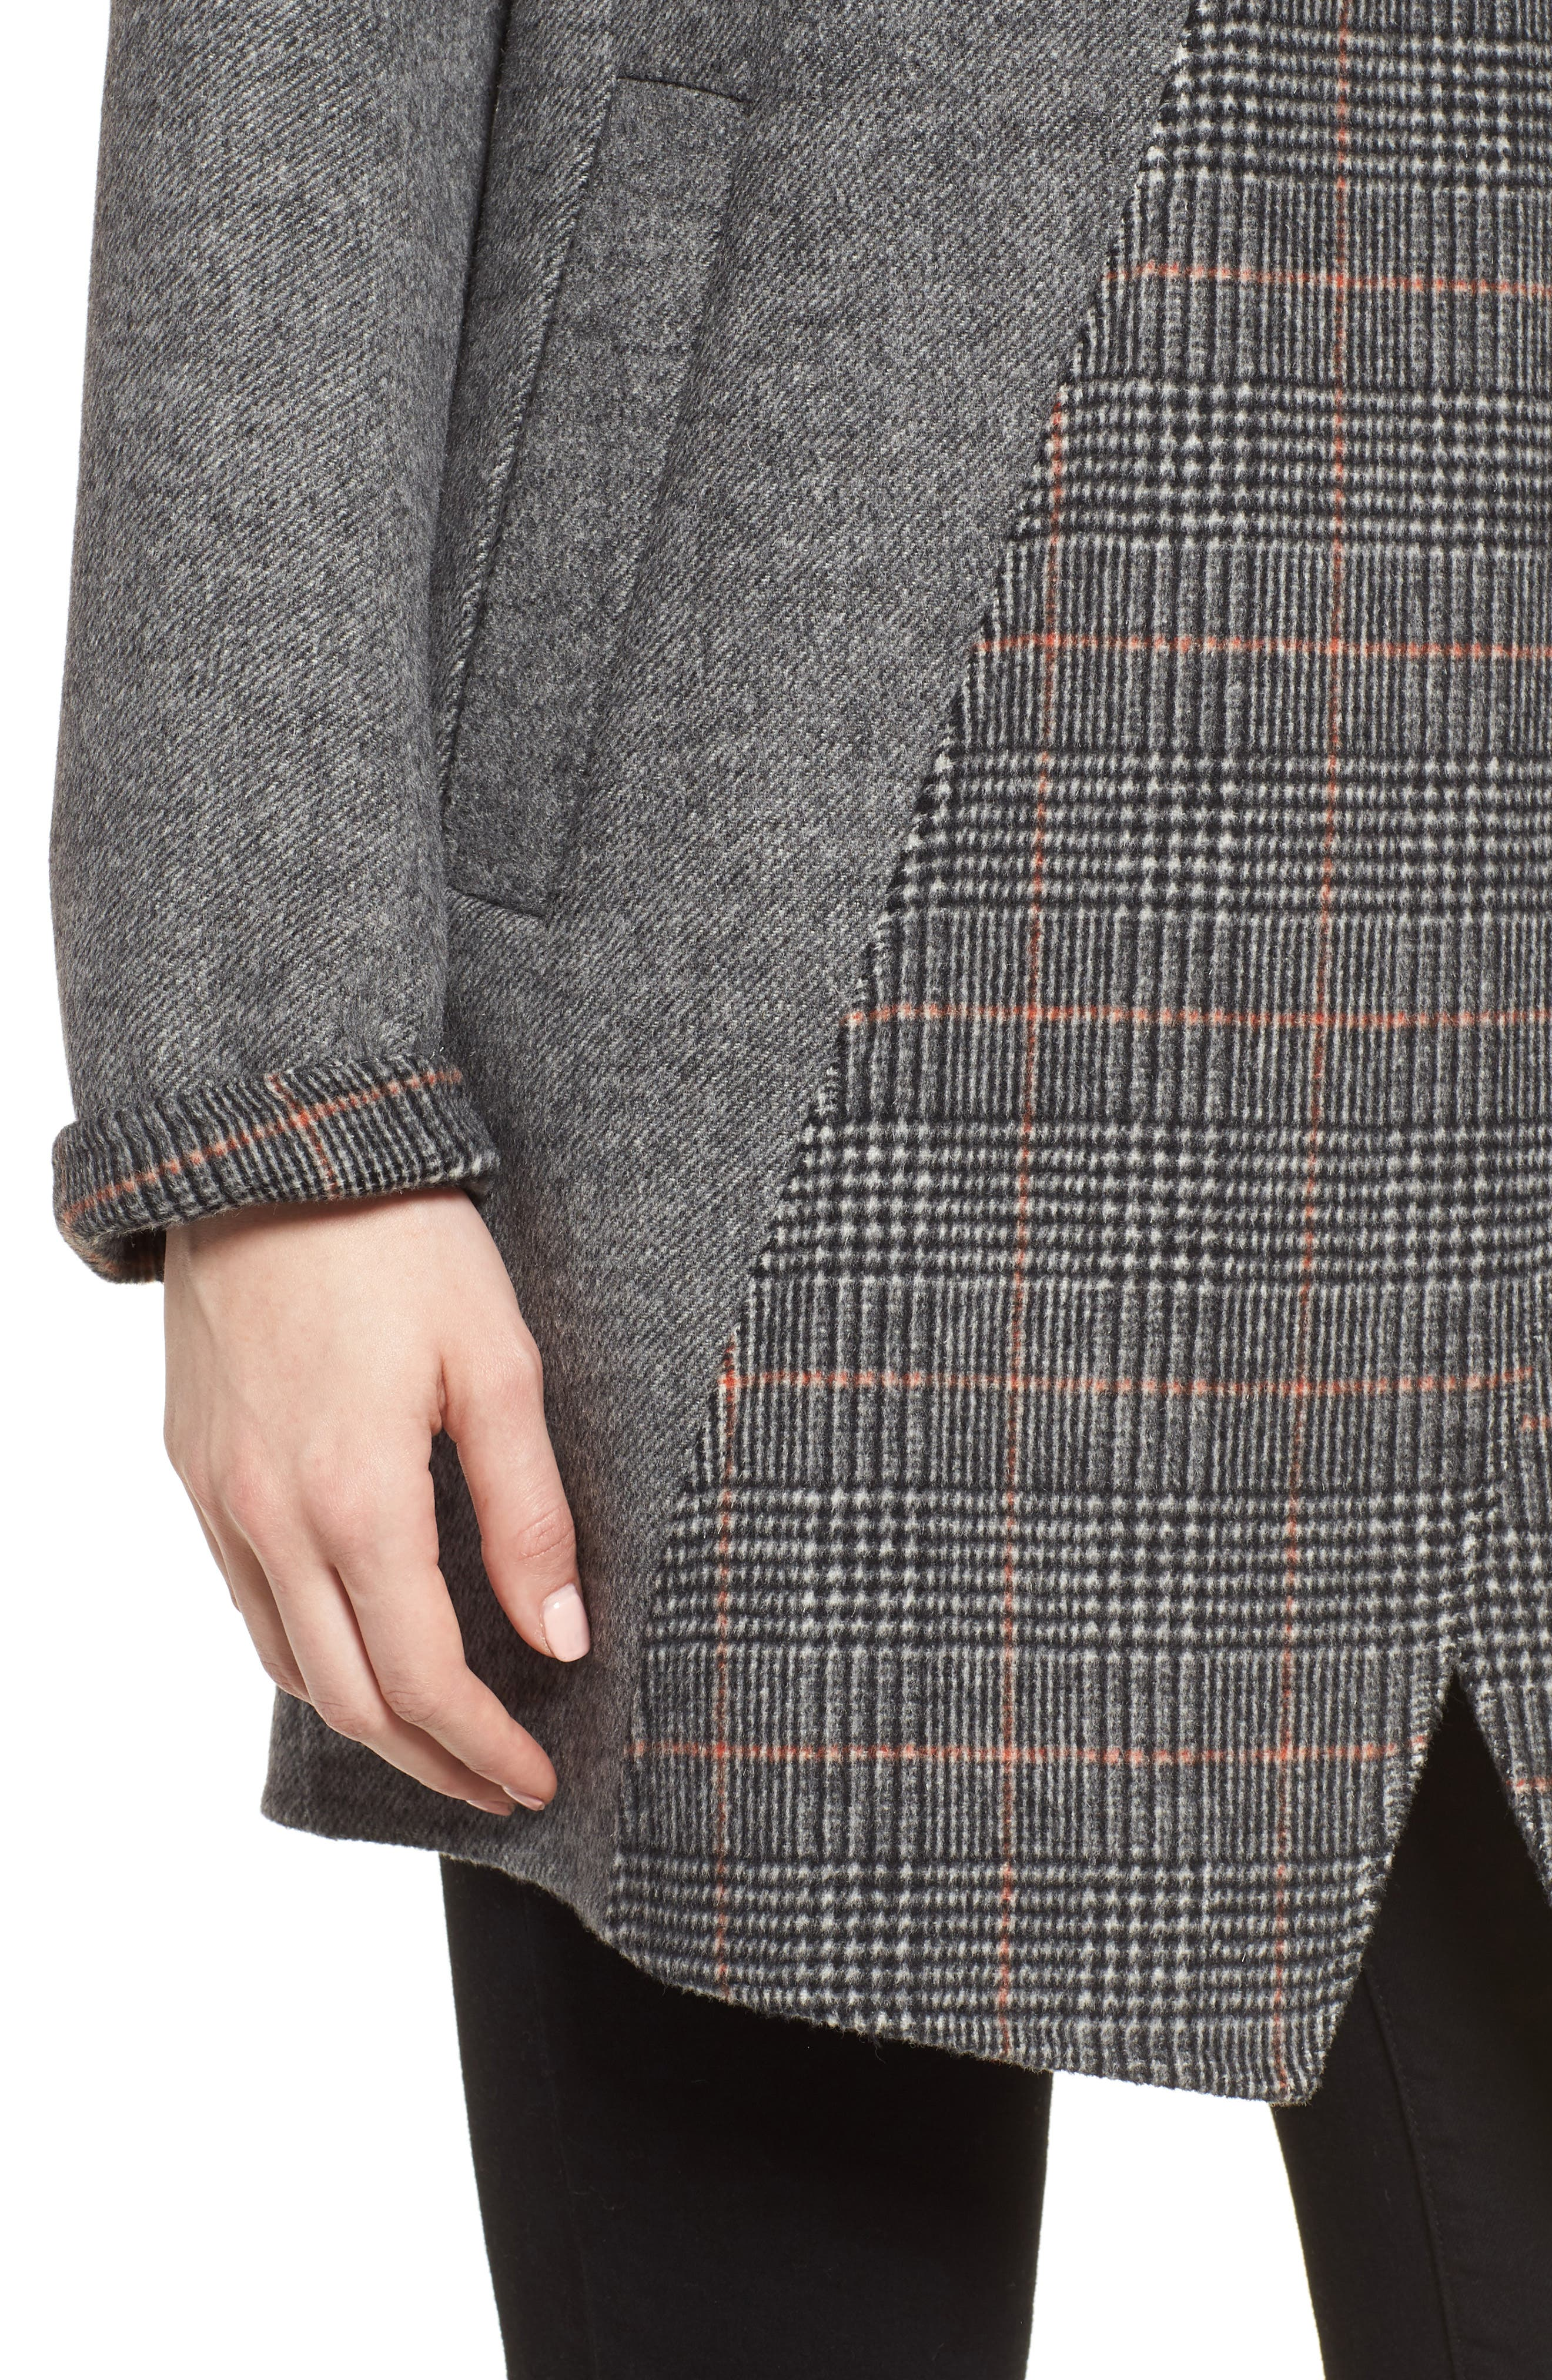 Nicky Double Face Wool Blend Oversize Coat,                             Alternate thumbnail 4, color,                             GREY COMBO TWILL/ PLAID